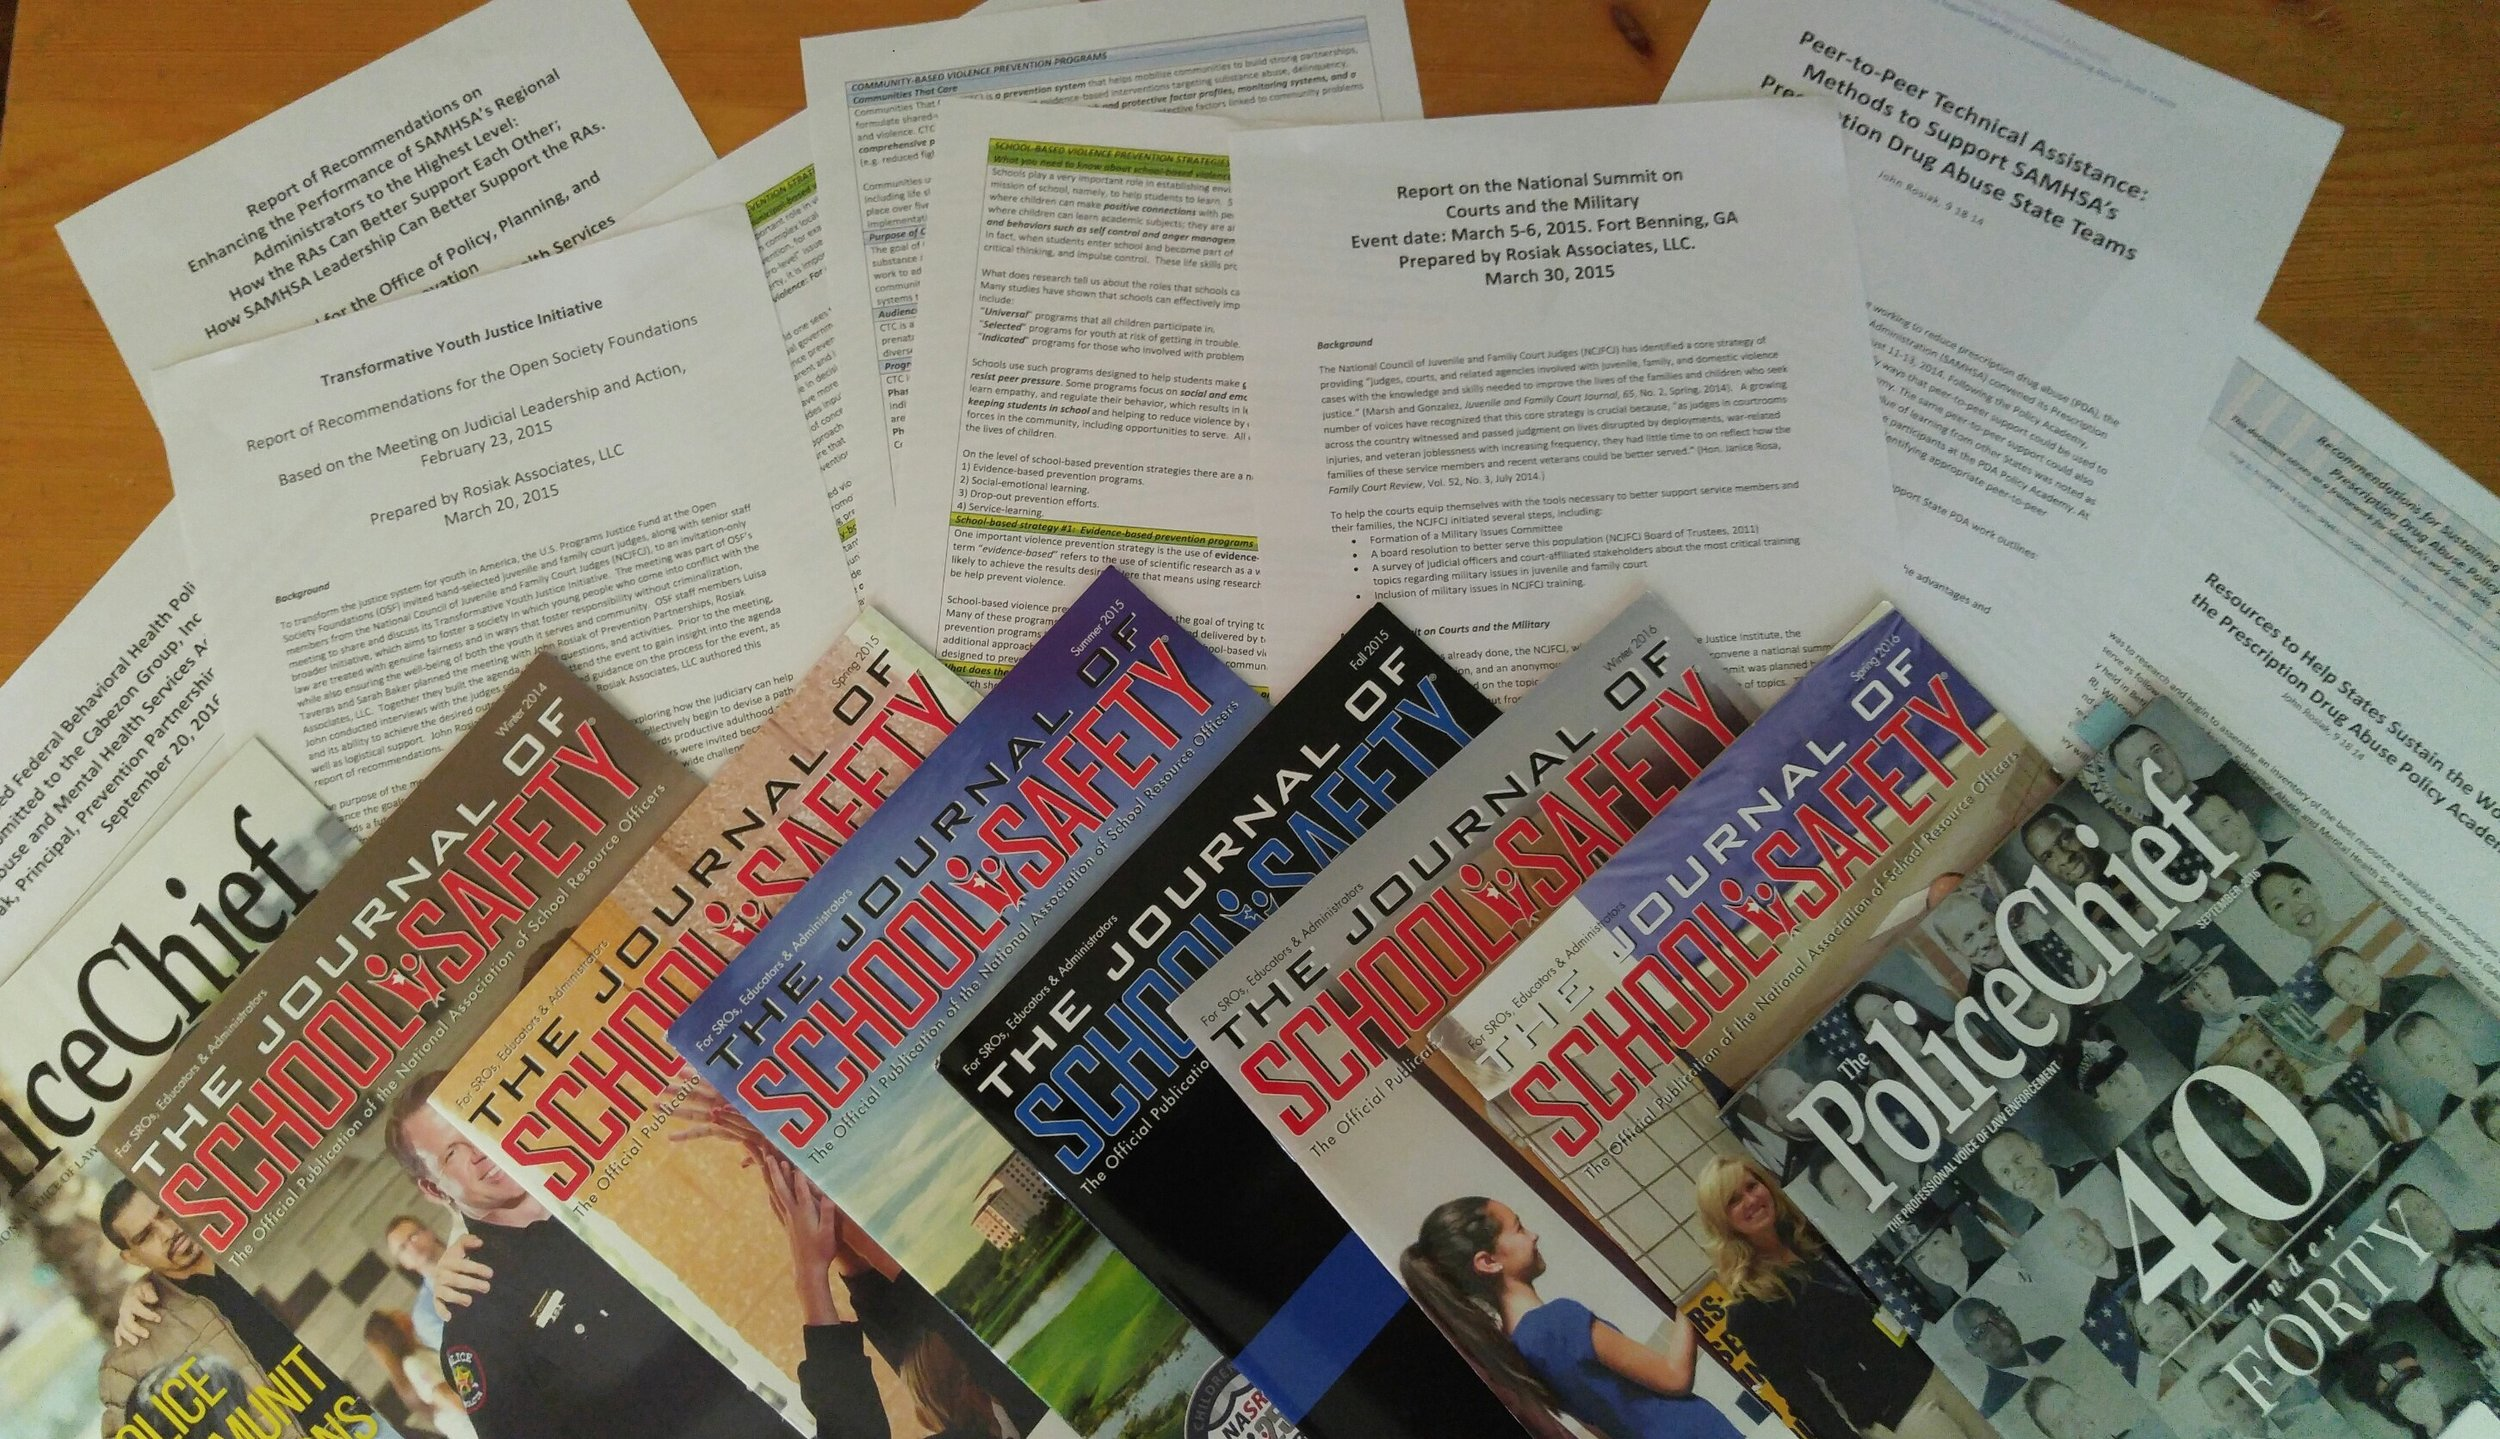 Prevention Partnerships has developed research reports, recommendations, curricula, event summaries, and articles. See    CLIENTS    menu for more details about documents produced for clients, and    PUBLICATIONS    for samples of articles written.